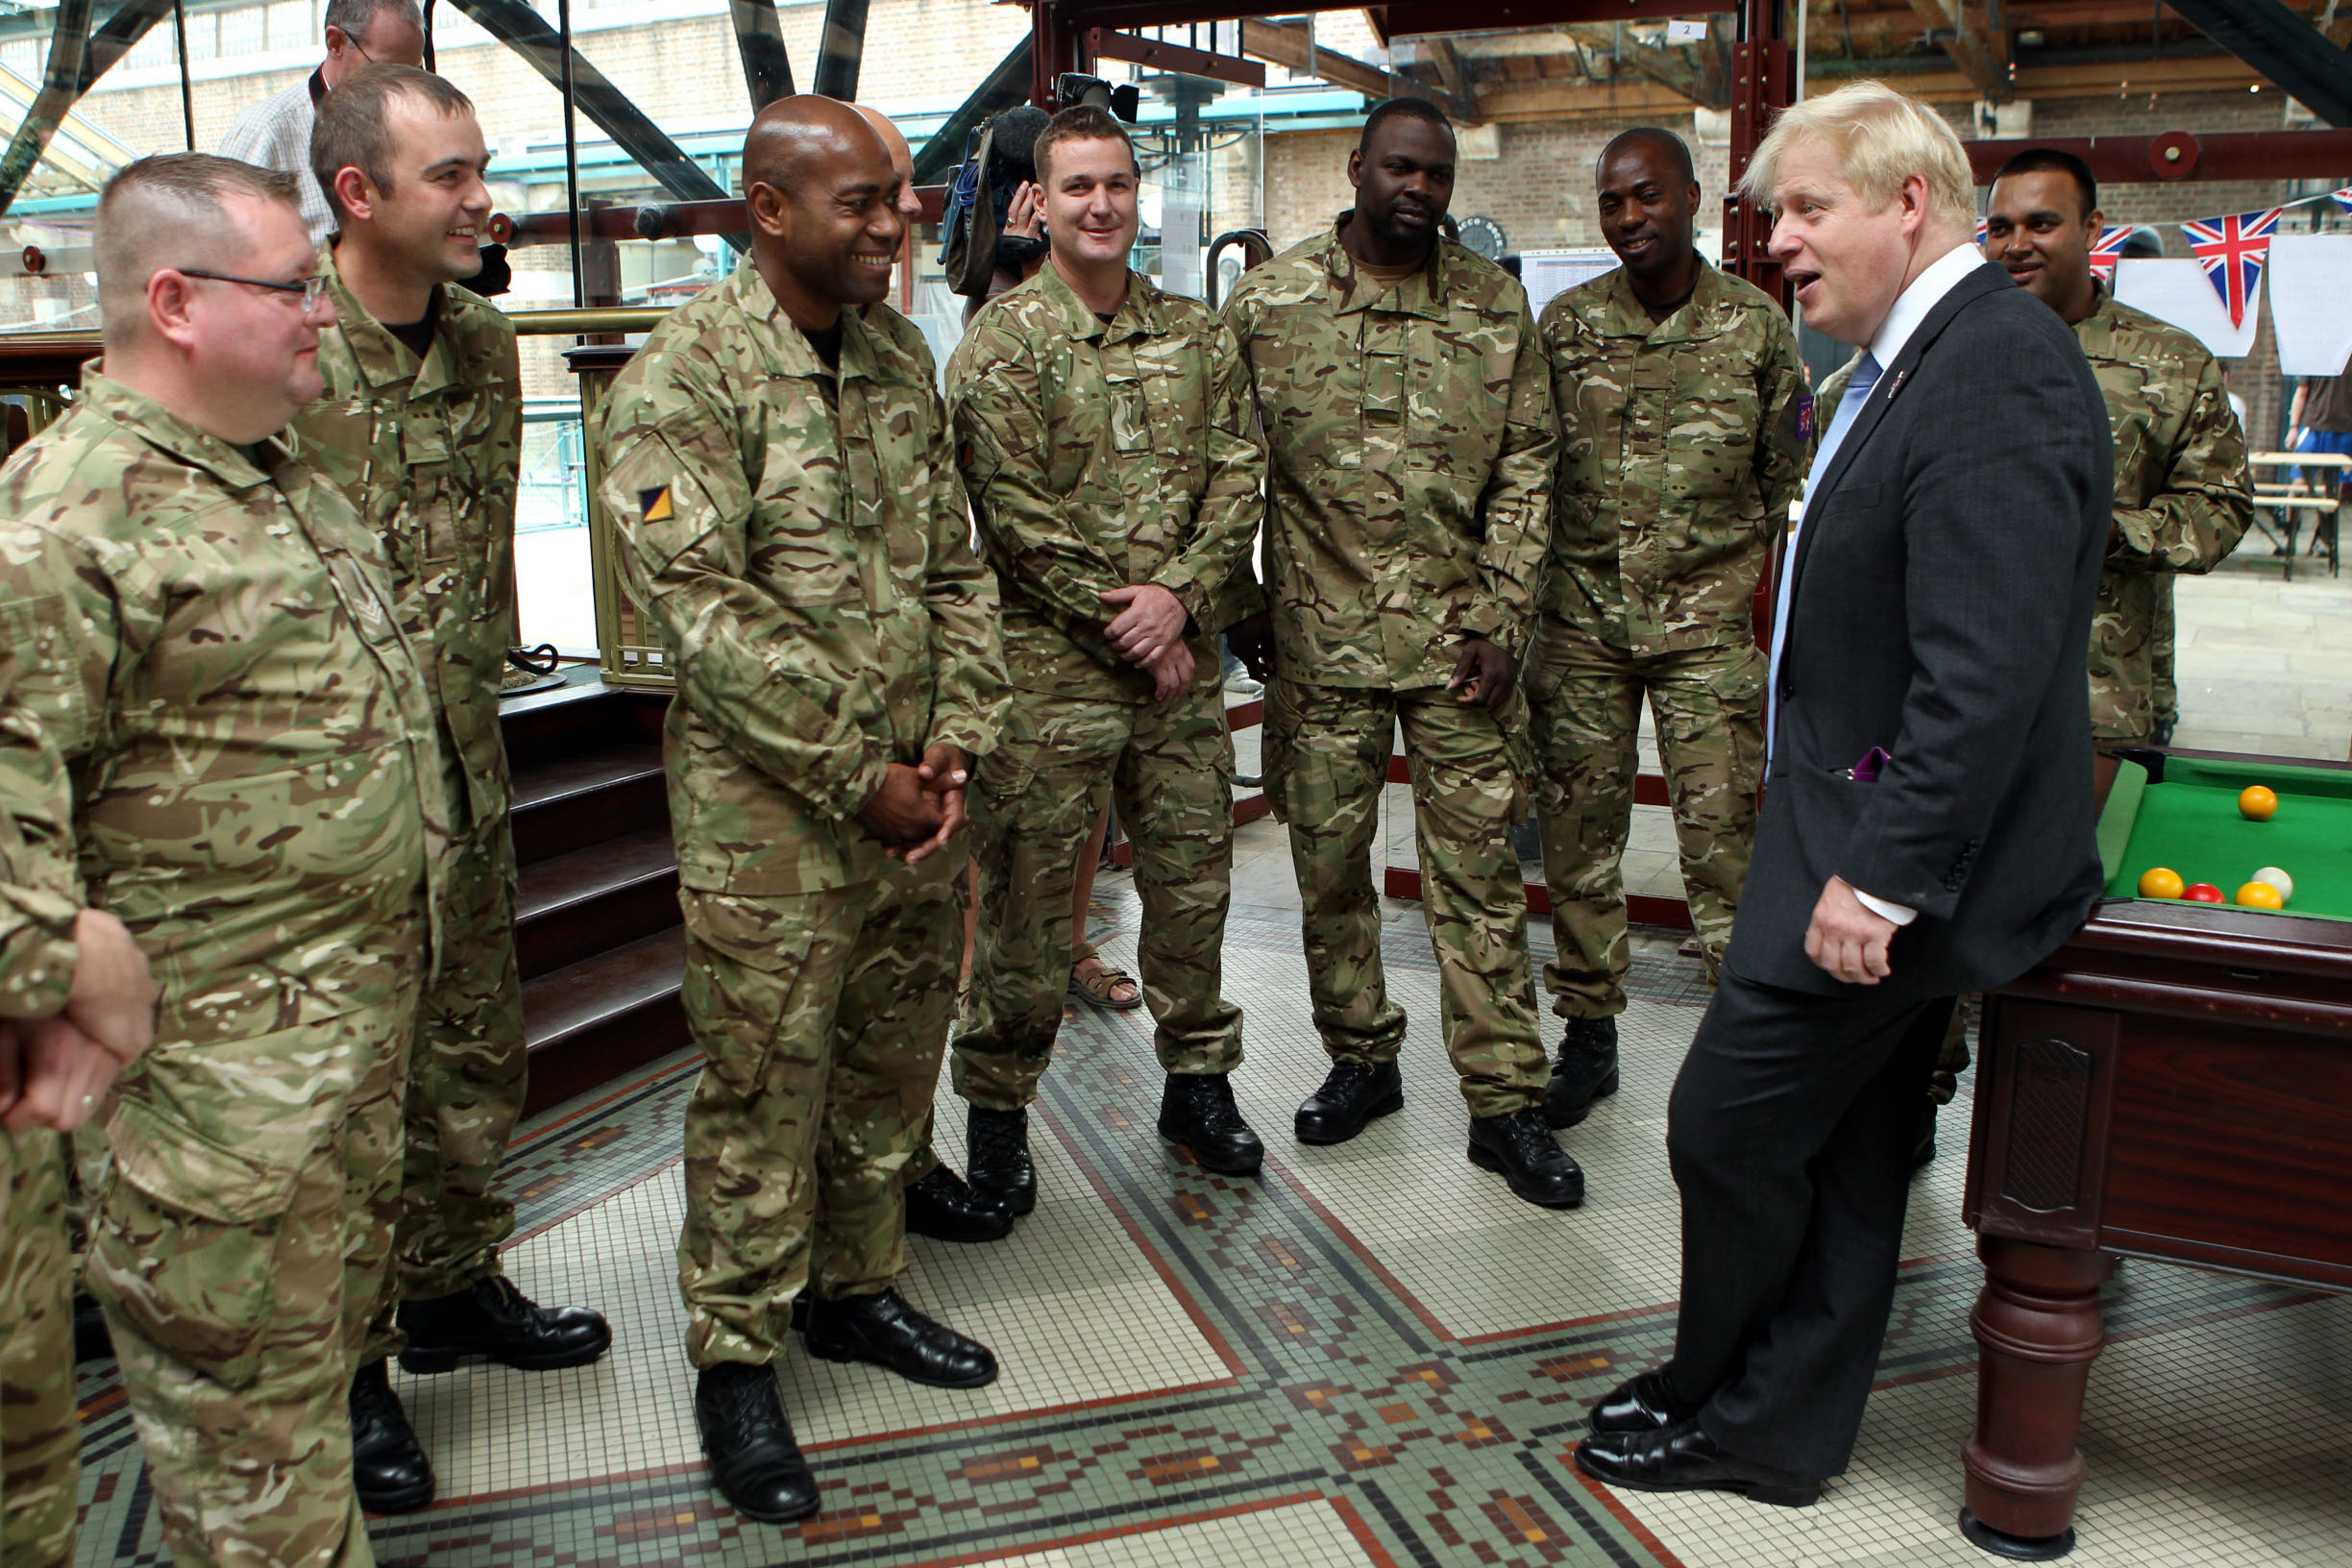 London Mayor Boris Johnson talks to members of the armed forces during a visit to Tobacco Dock, Wapping, as a thank you for their help in making the London 2012 Olympic Games secure.